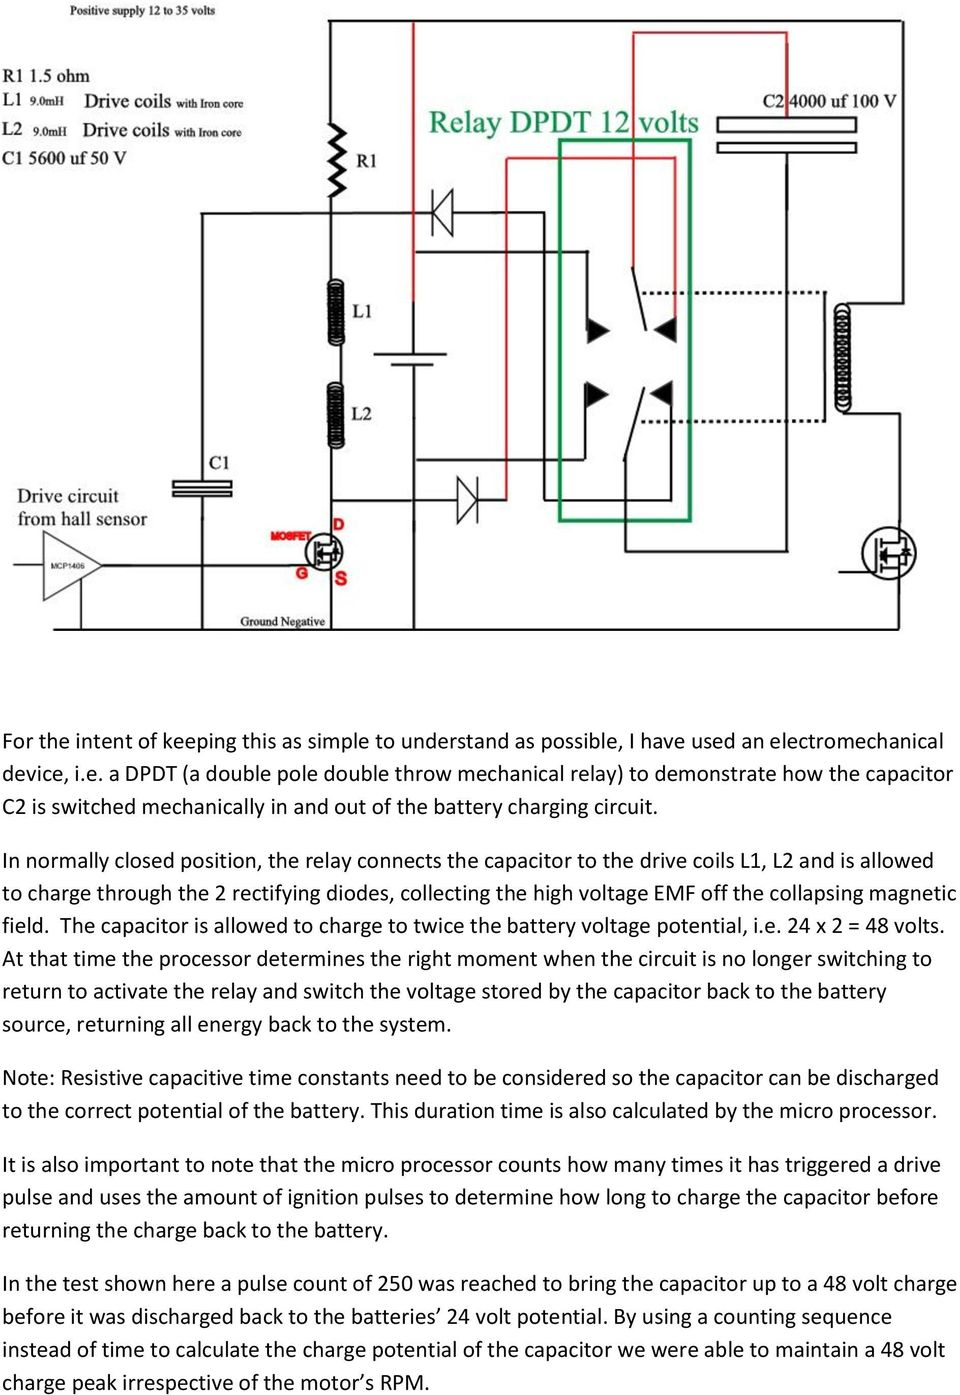 Panacea Bocaf On Line University Pdf Pulse Counter Further Relay Circuit Wiring Diagram Magnetic Field The Capacitor Is Allowed To Charge Twice Battery Voltage Potential